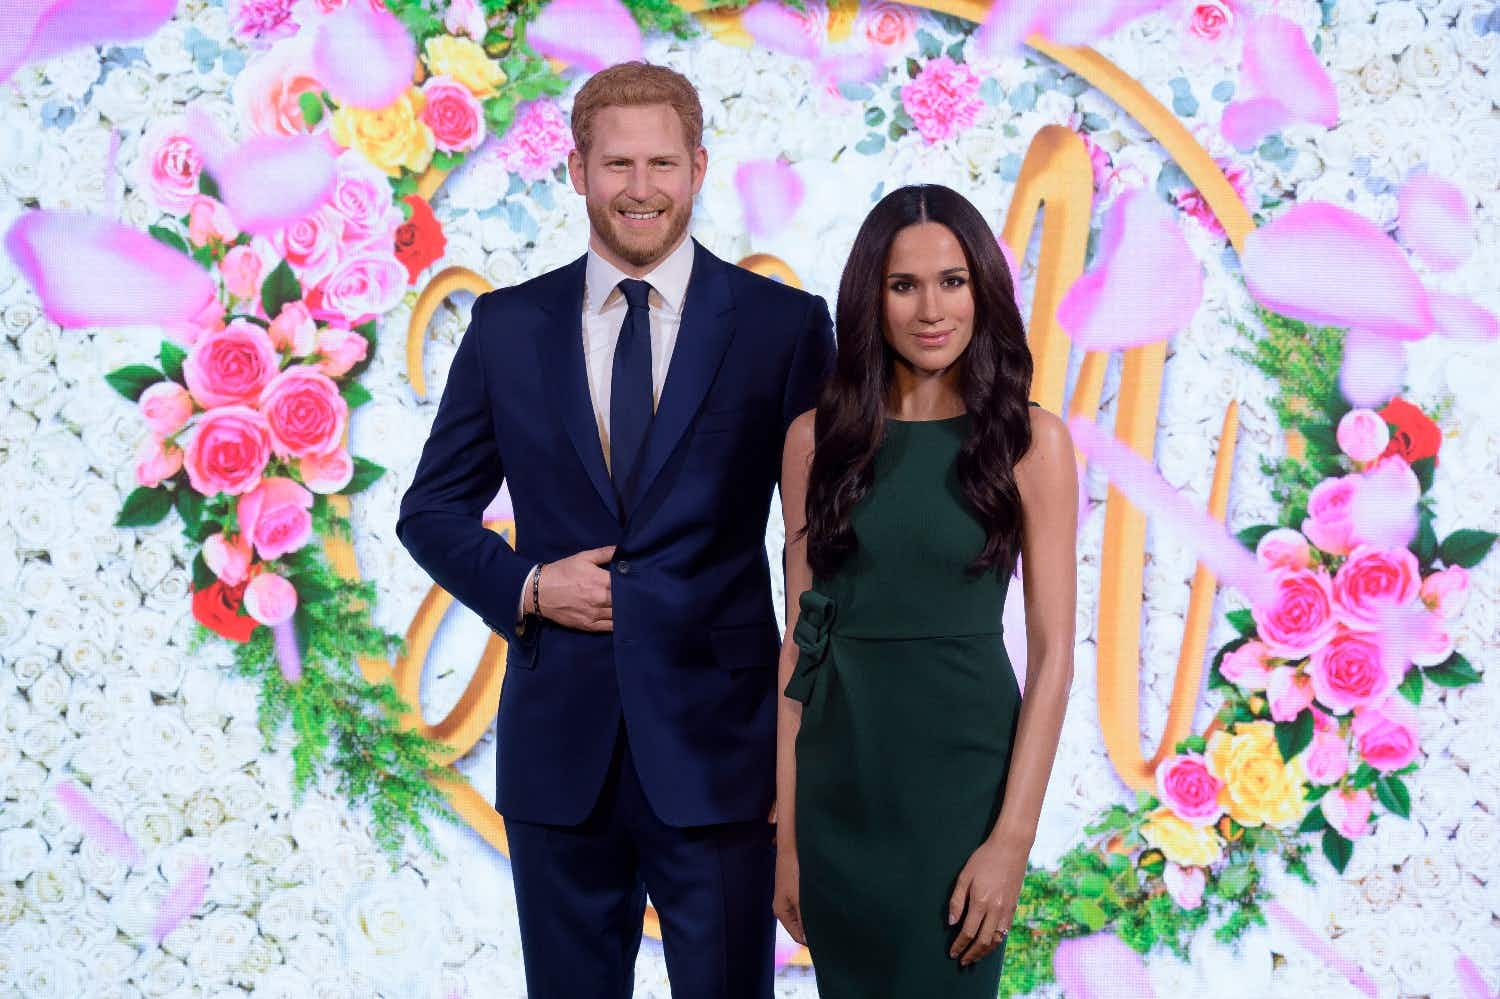 Meghan and Harry arriving at Madame Tussauds © Madame Tussauds London